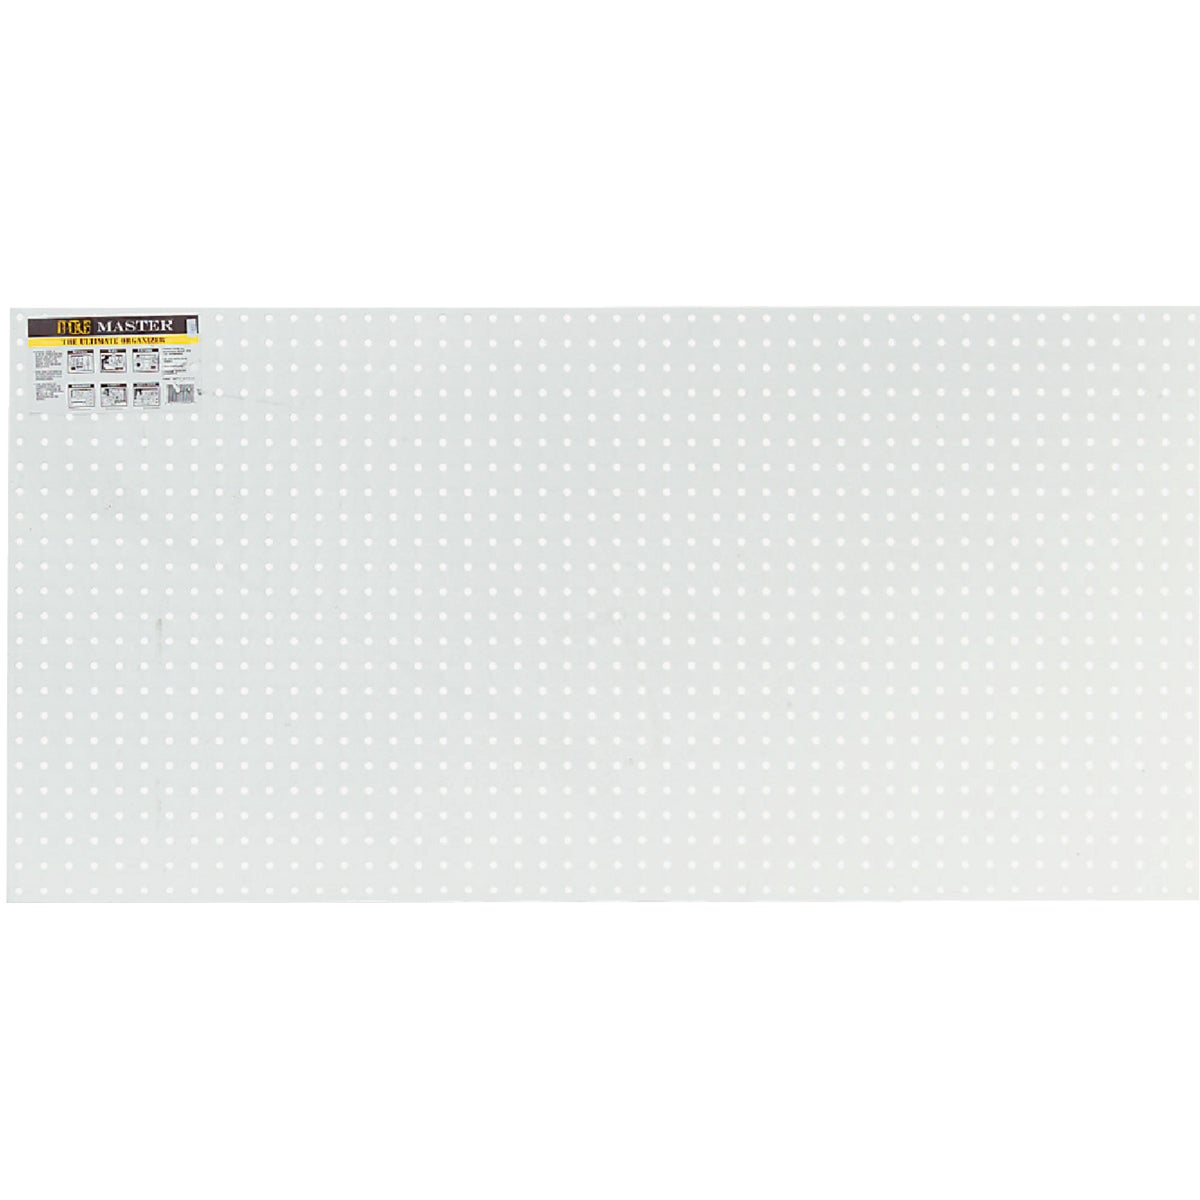 2'X4' WHT POLY PEGBOARD - 79983 by Ufpi   Plstc Lattice